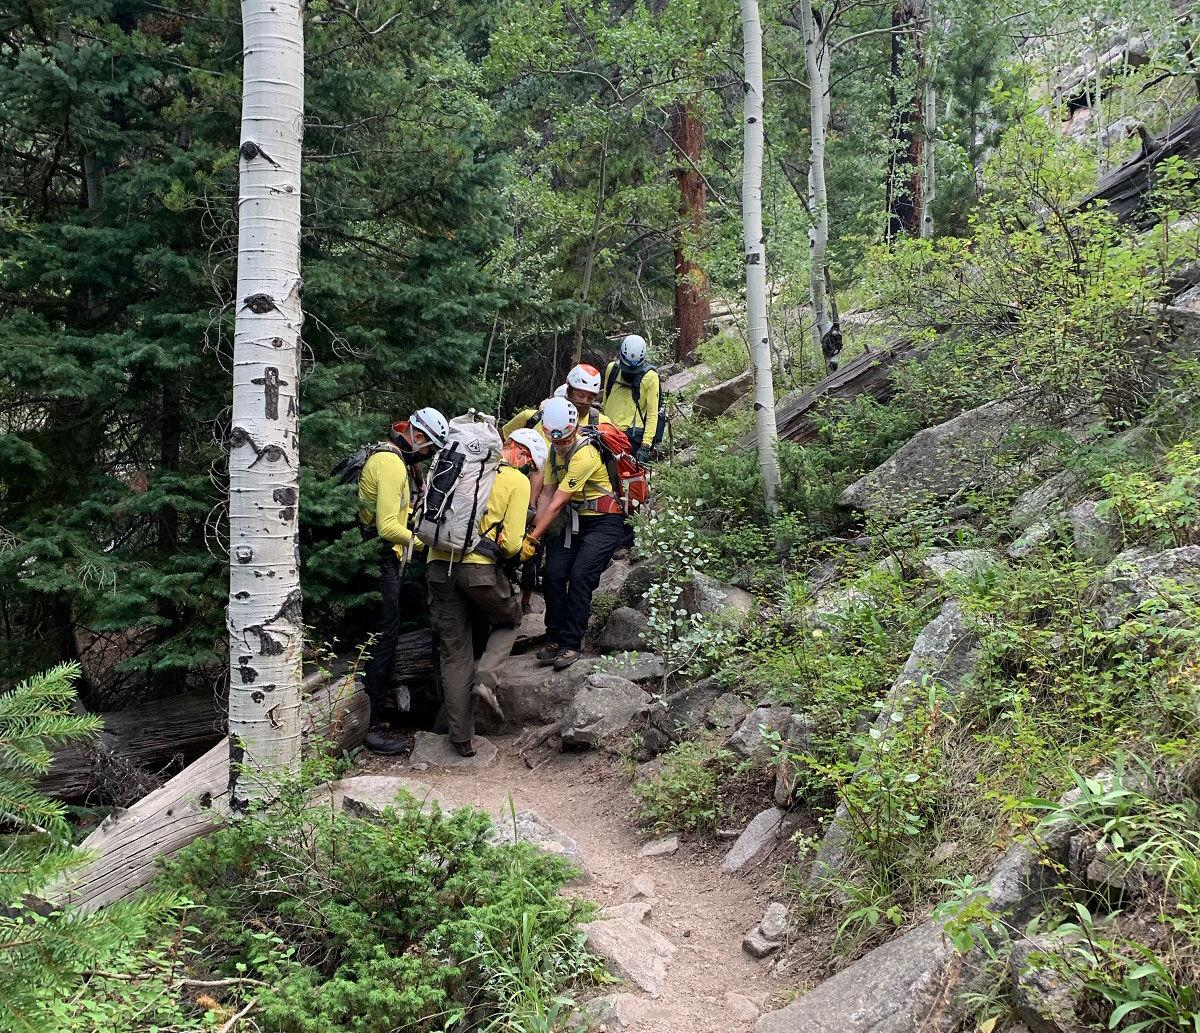 Injury From Fall At Bridal Veil Falls In Rocky Mountain National Park